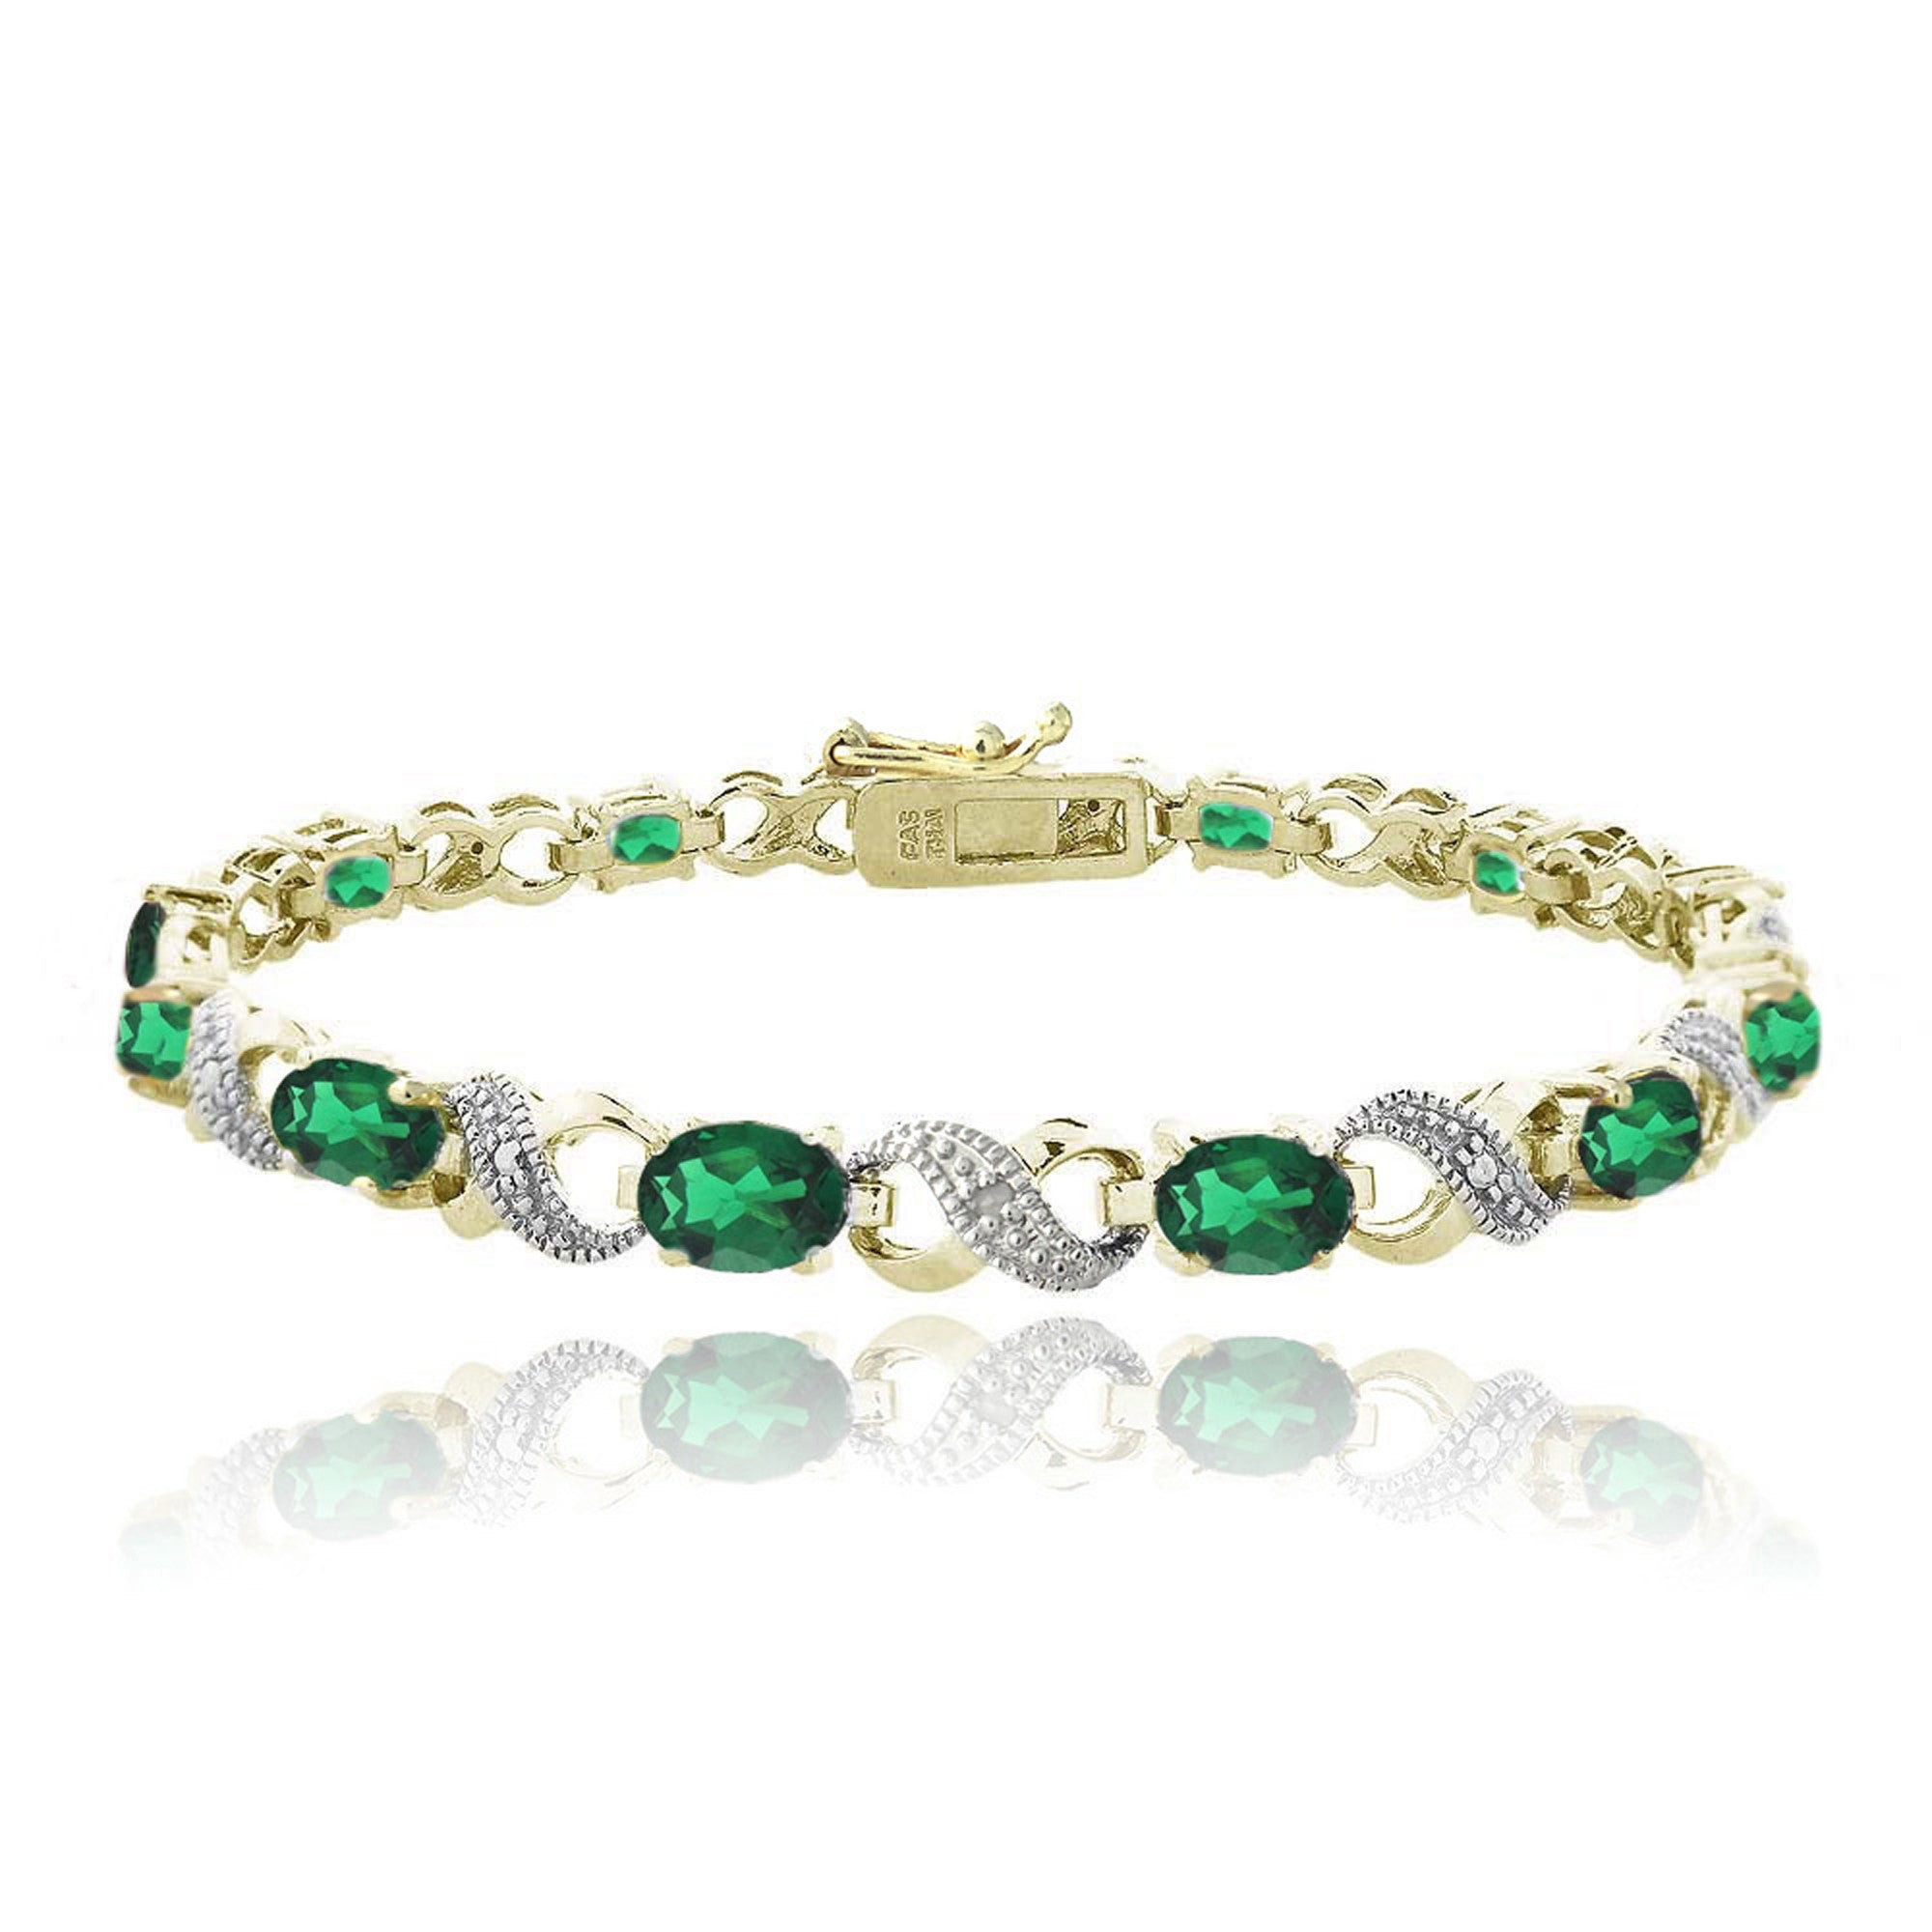 Infinity Link Bracelet With Diamond & Gem Accents - Created Emerald